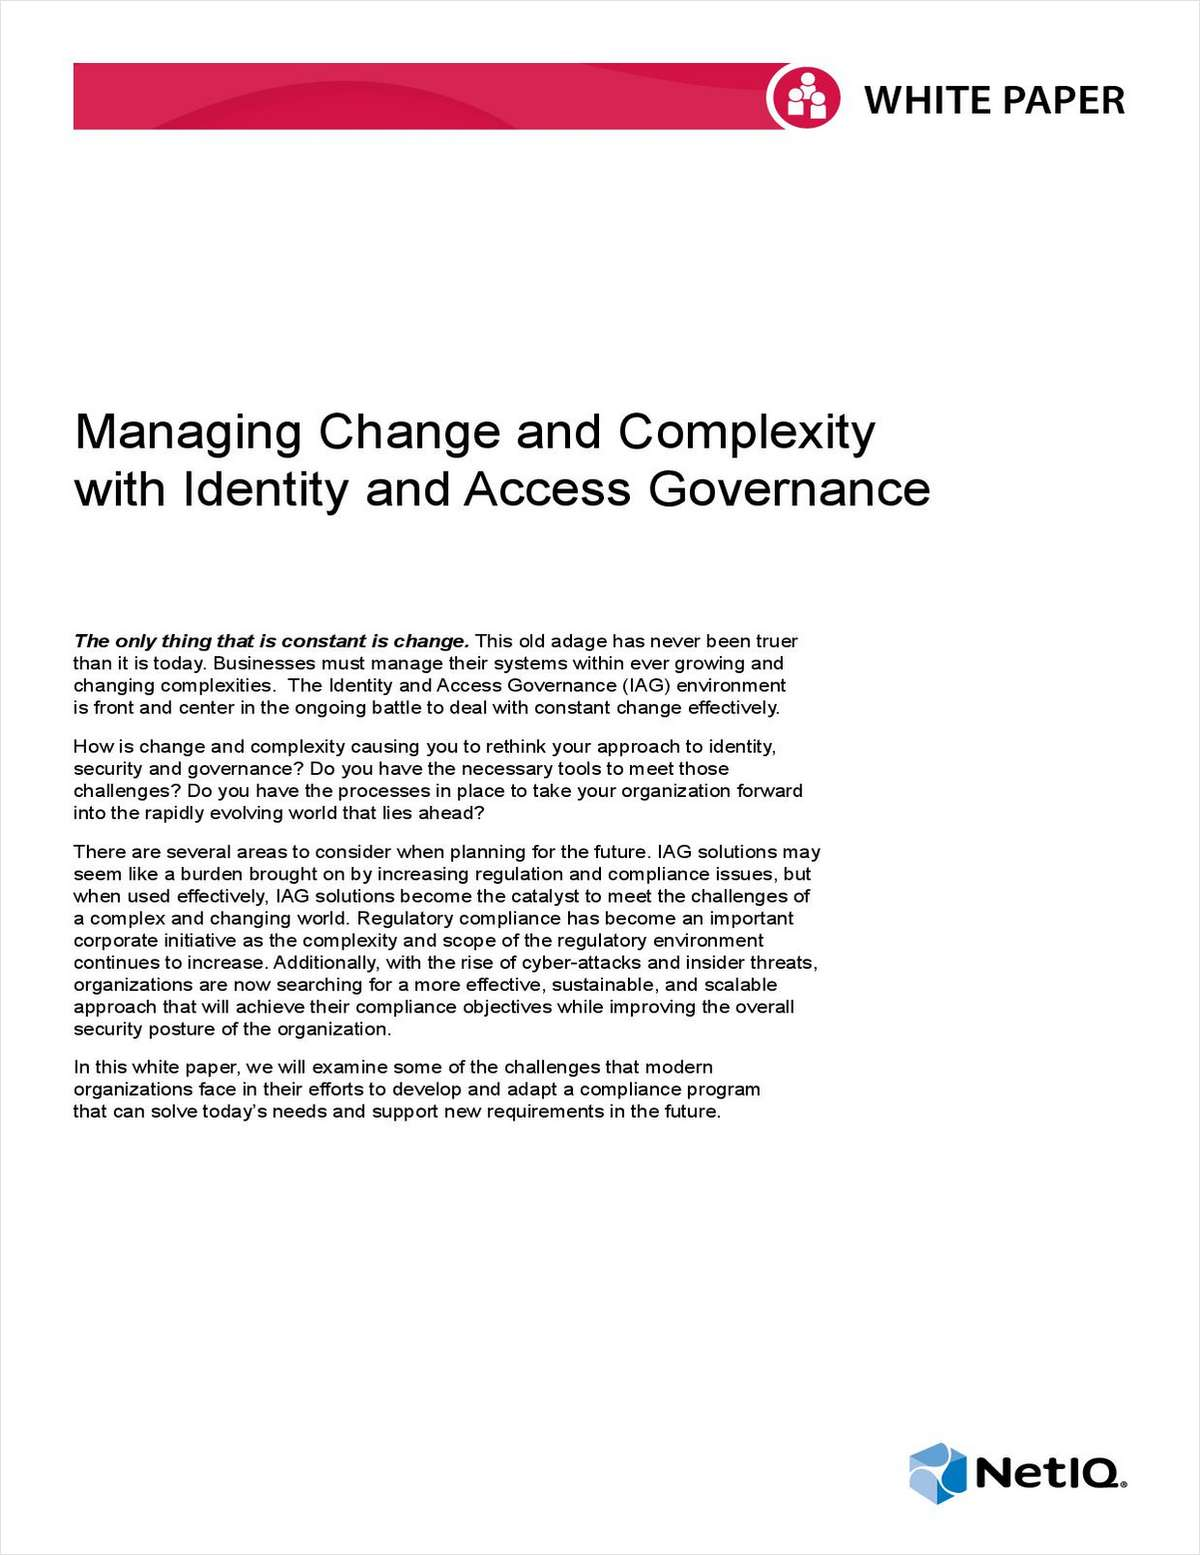 Managing Change and Complexity with Identity and Access Governance